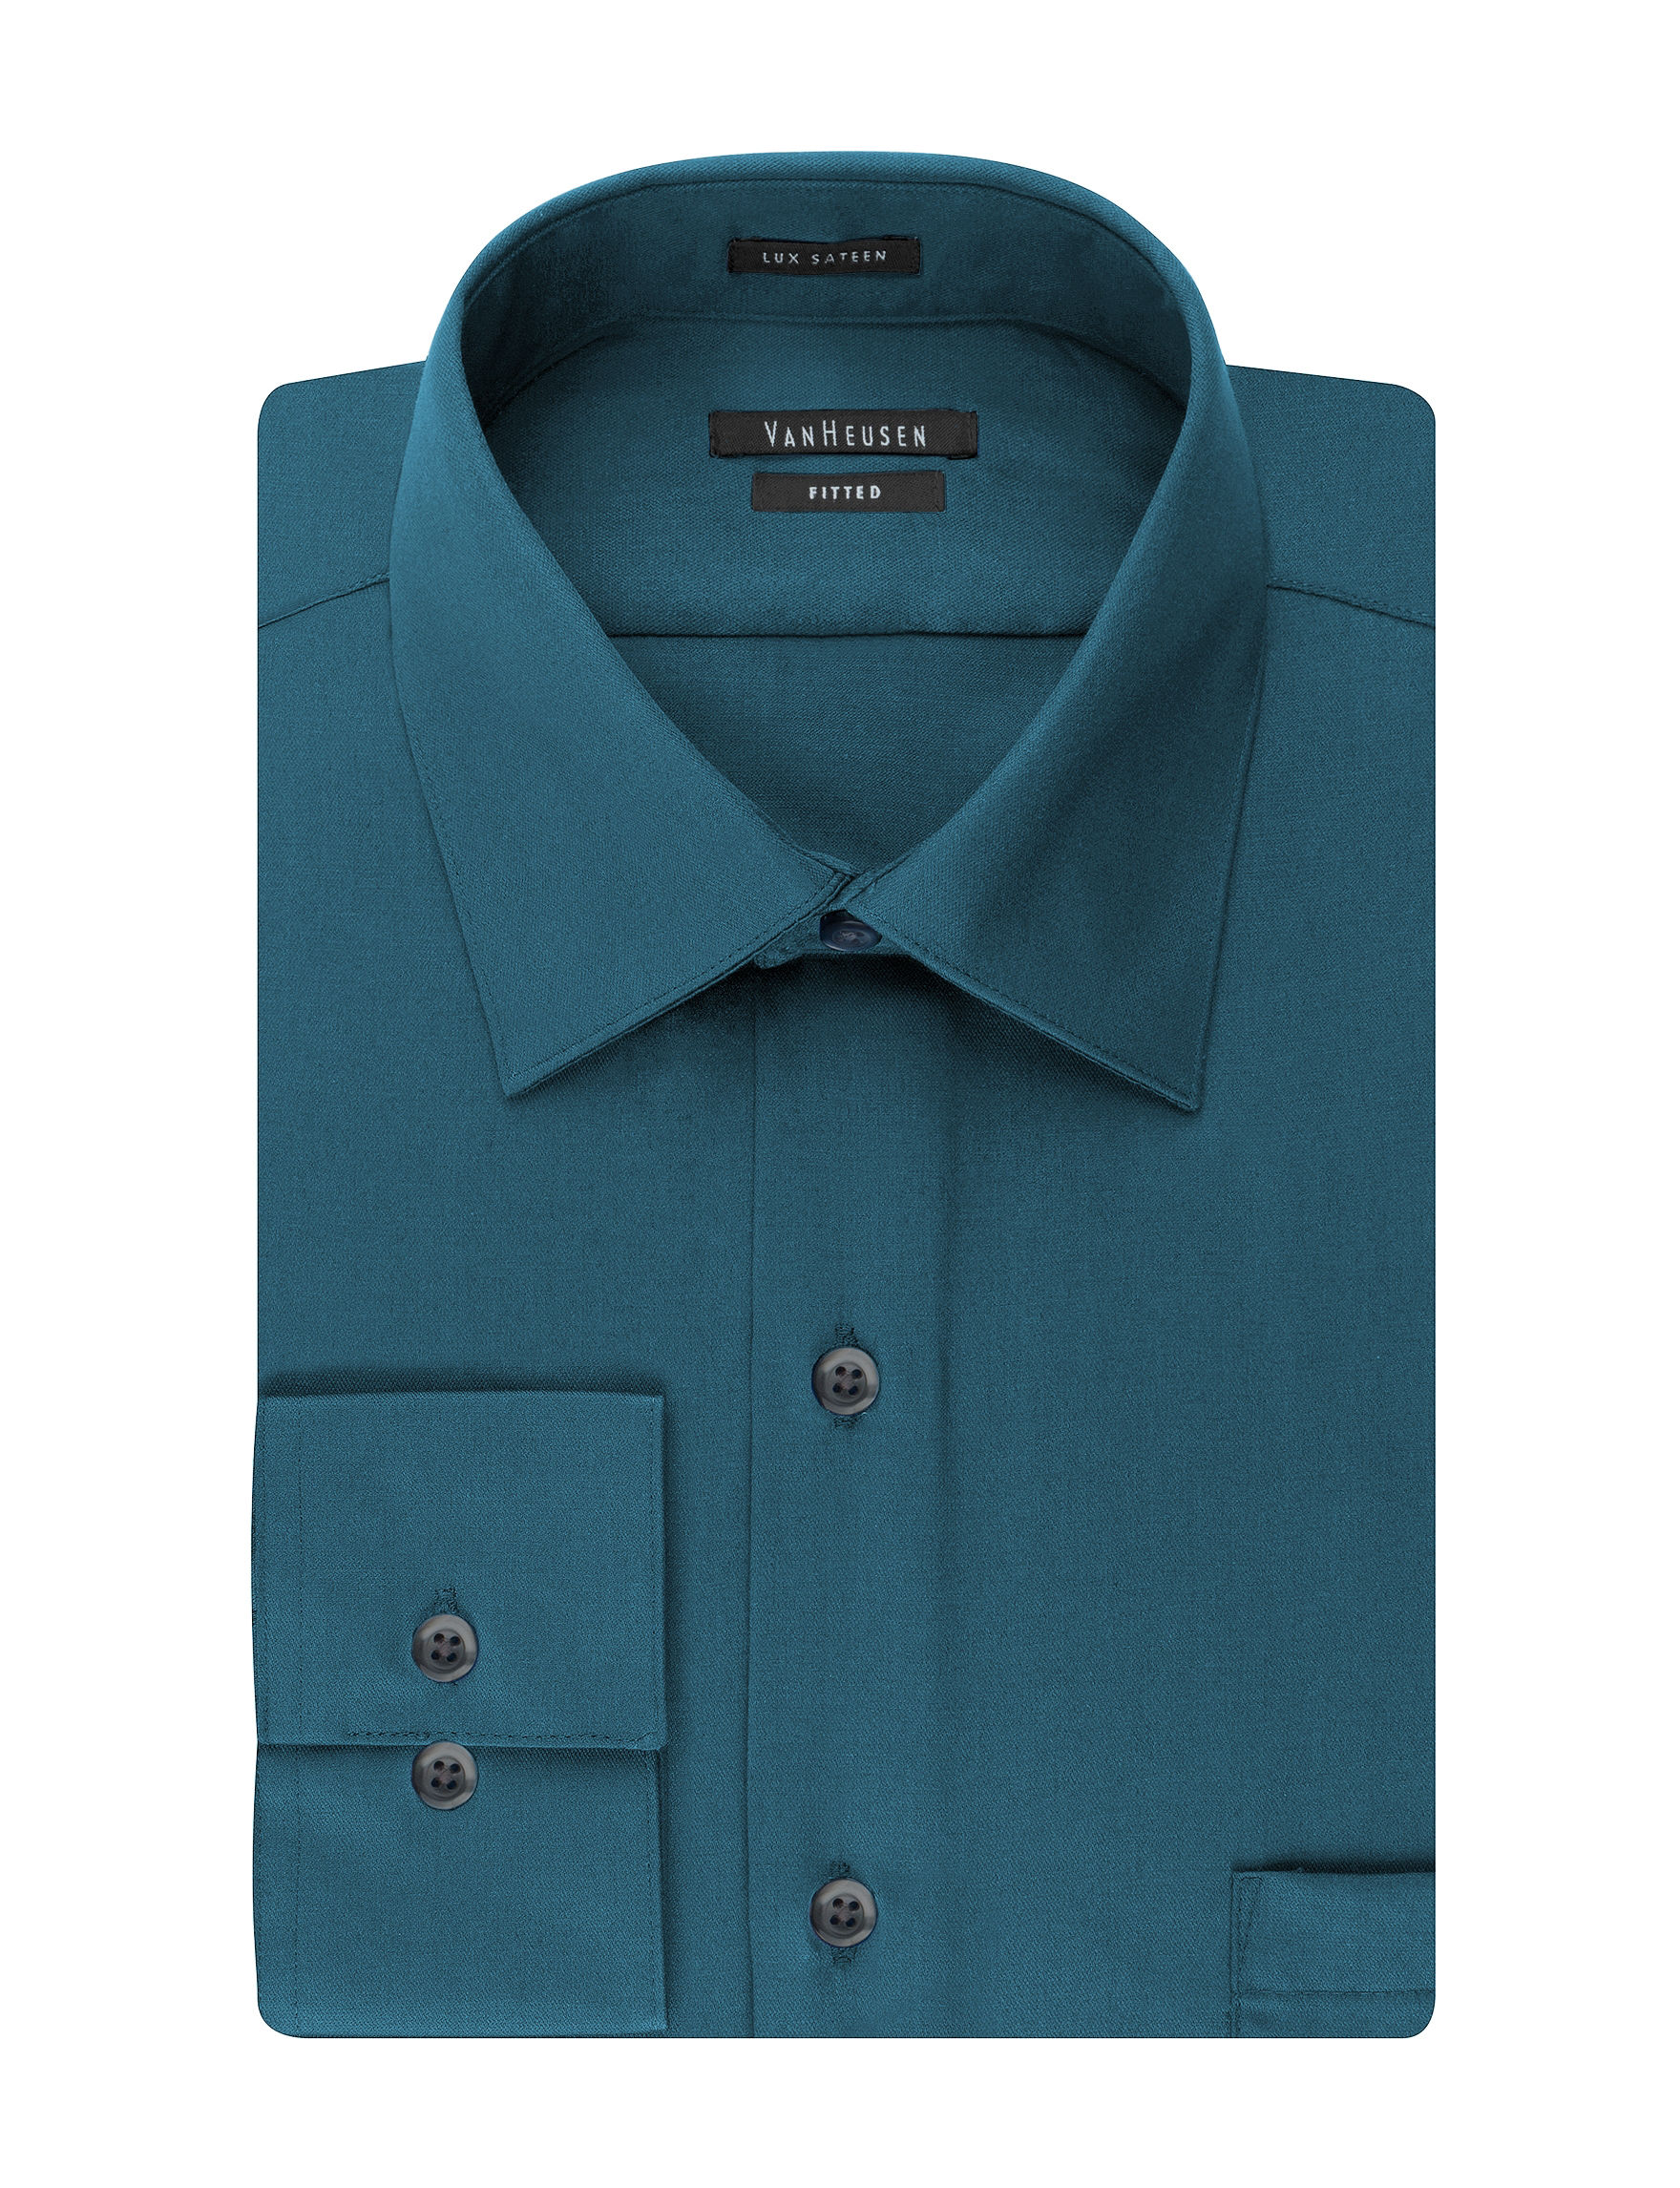 Van Heusen Turq Legion Blue Dress Shirts